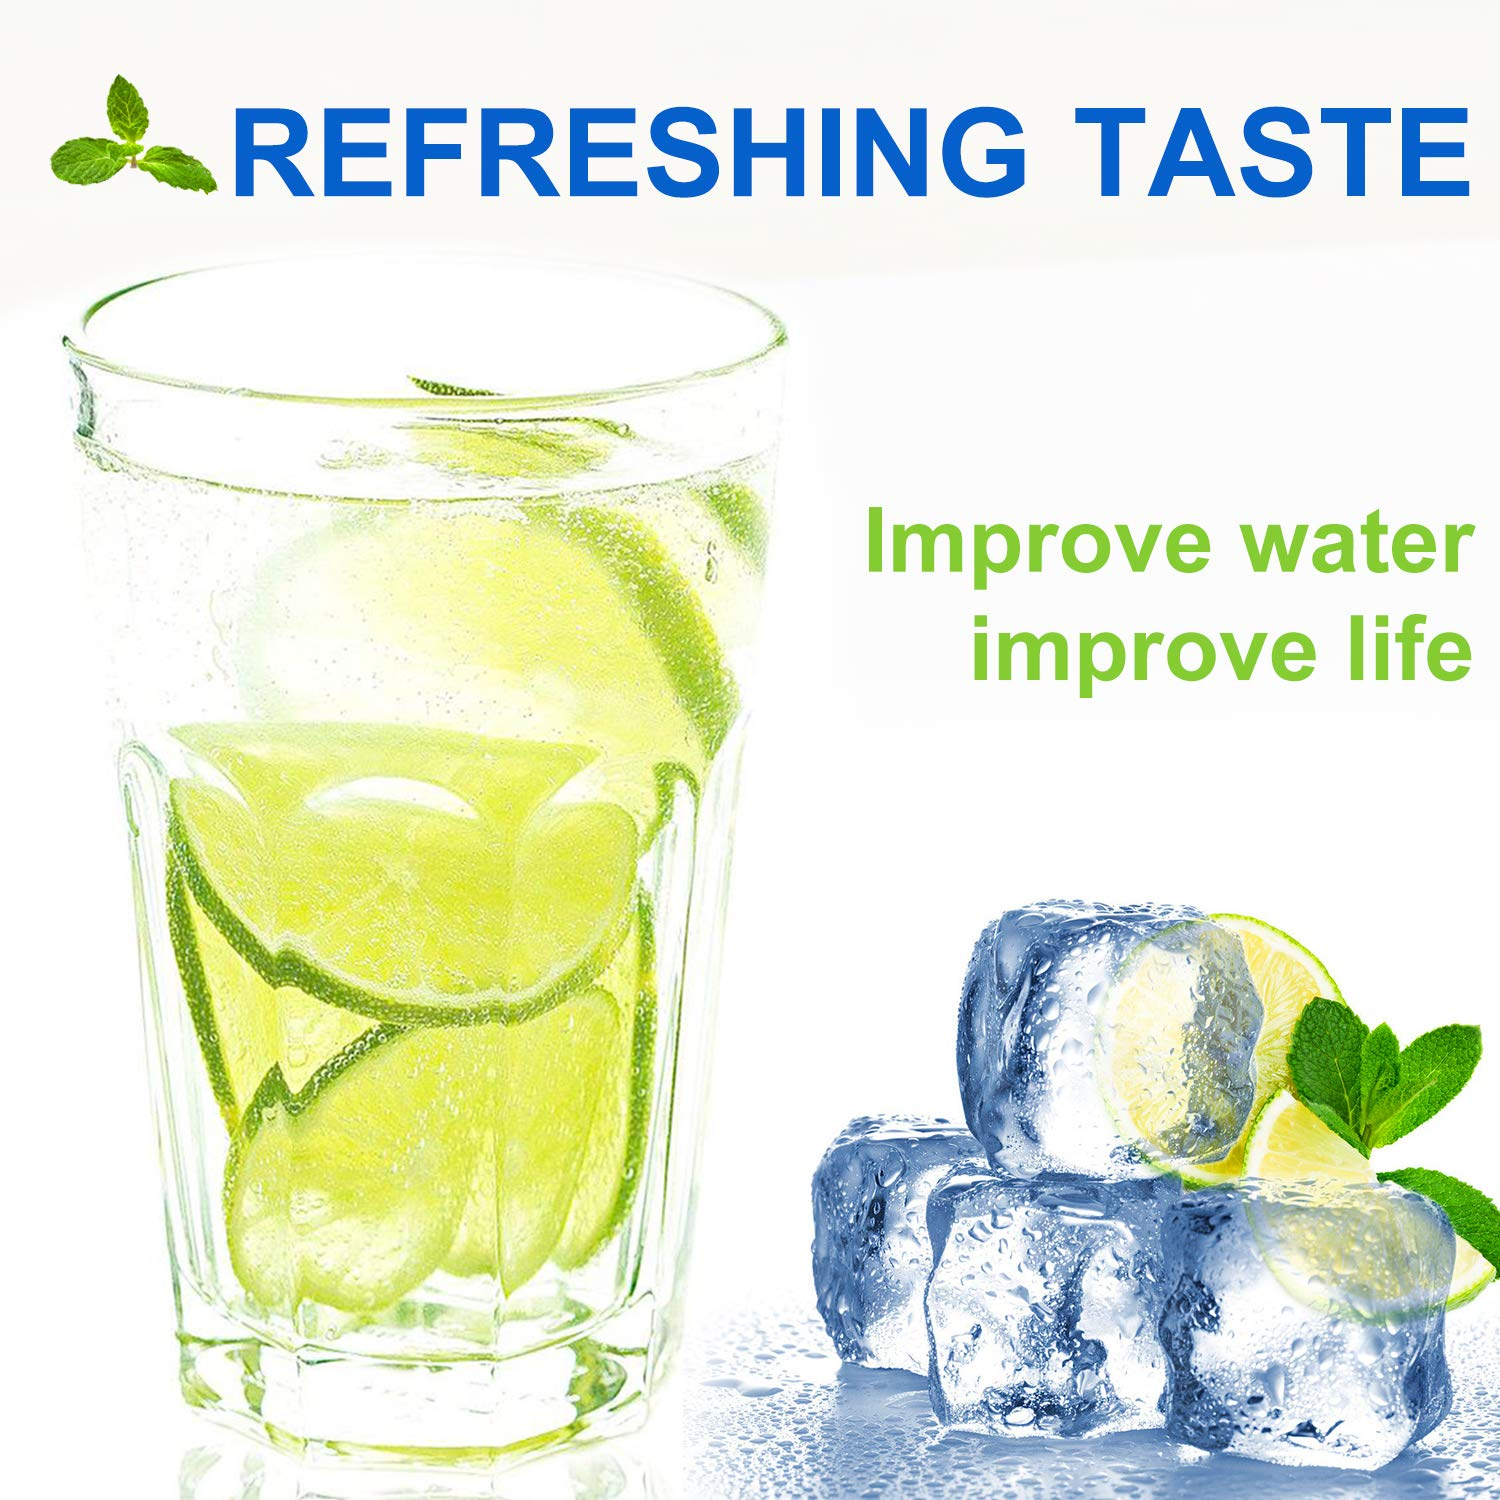 Aqualink LT800P Refrigerator Water Filter Replacement Compatible